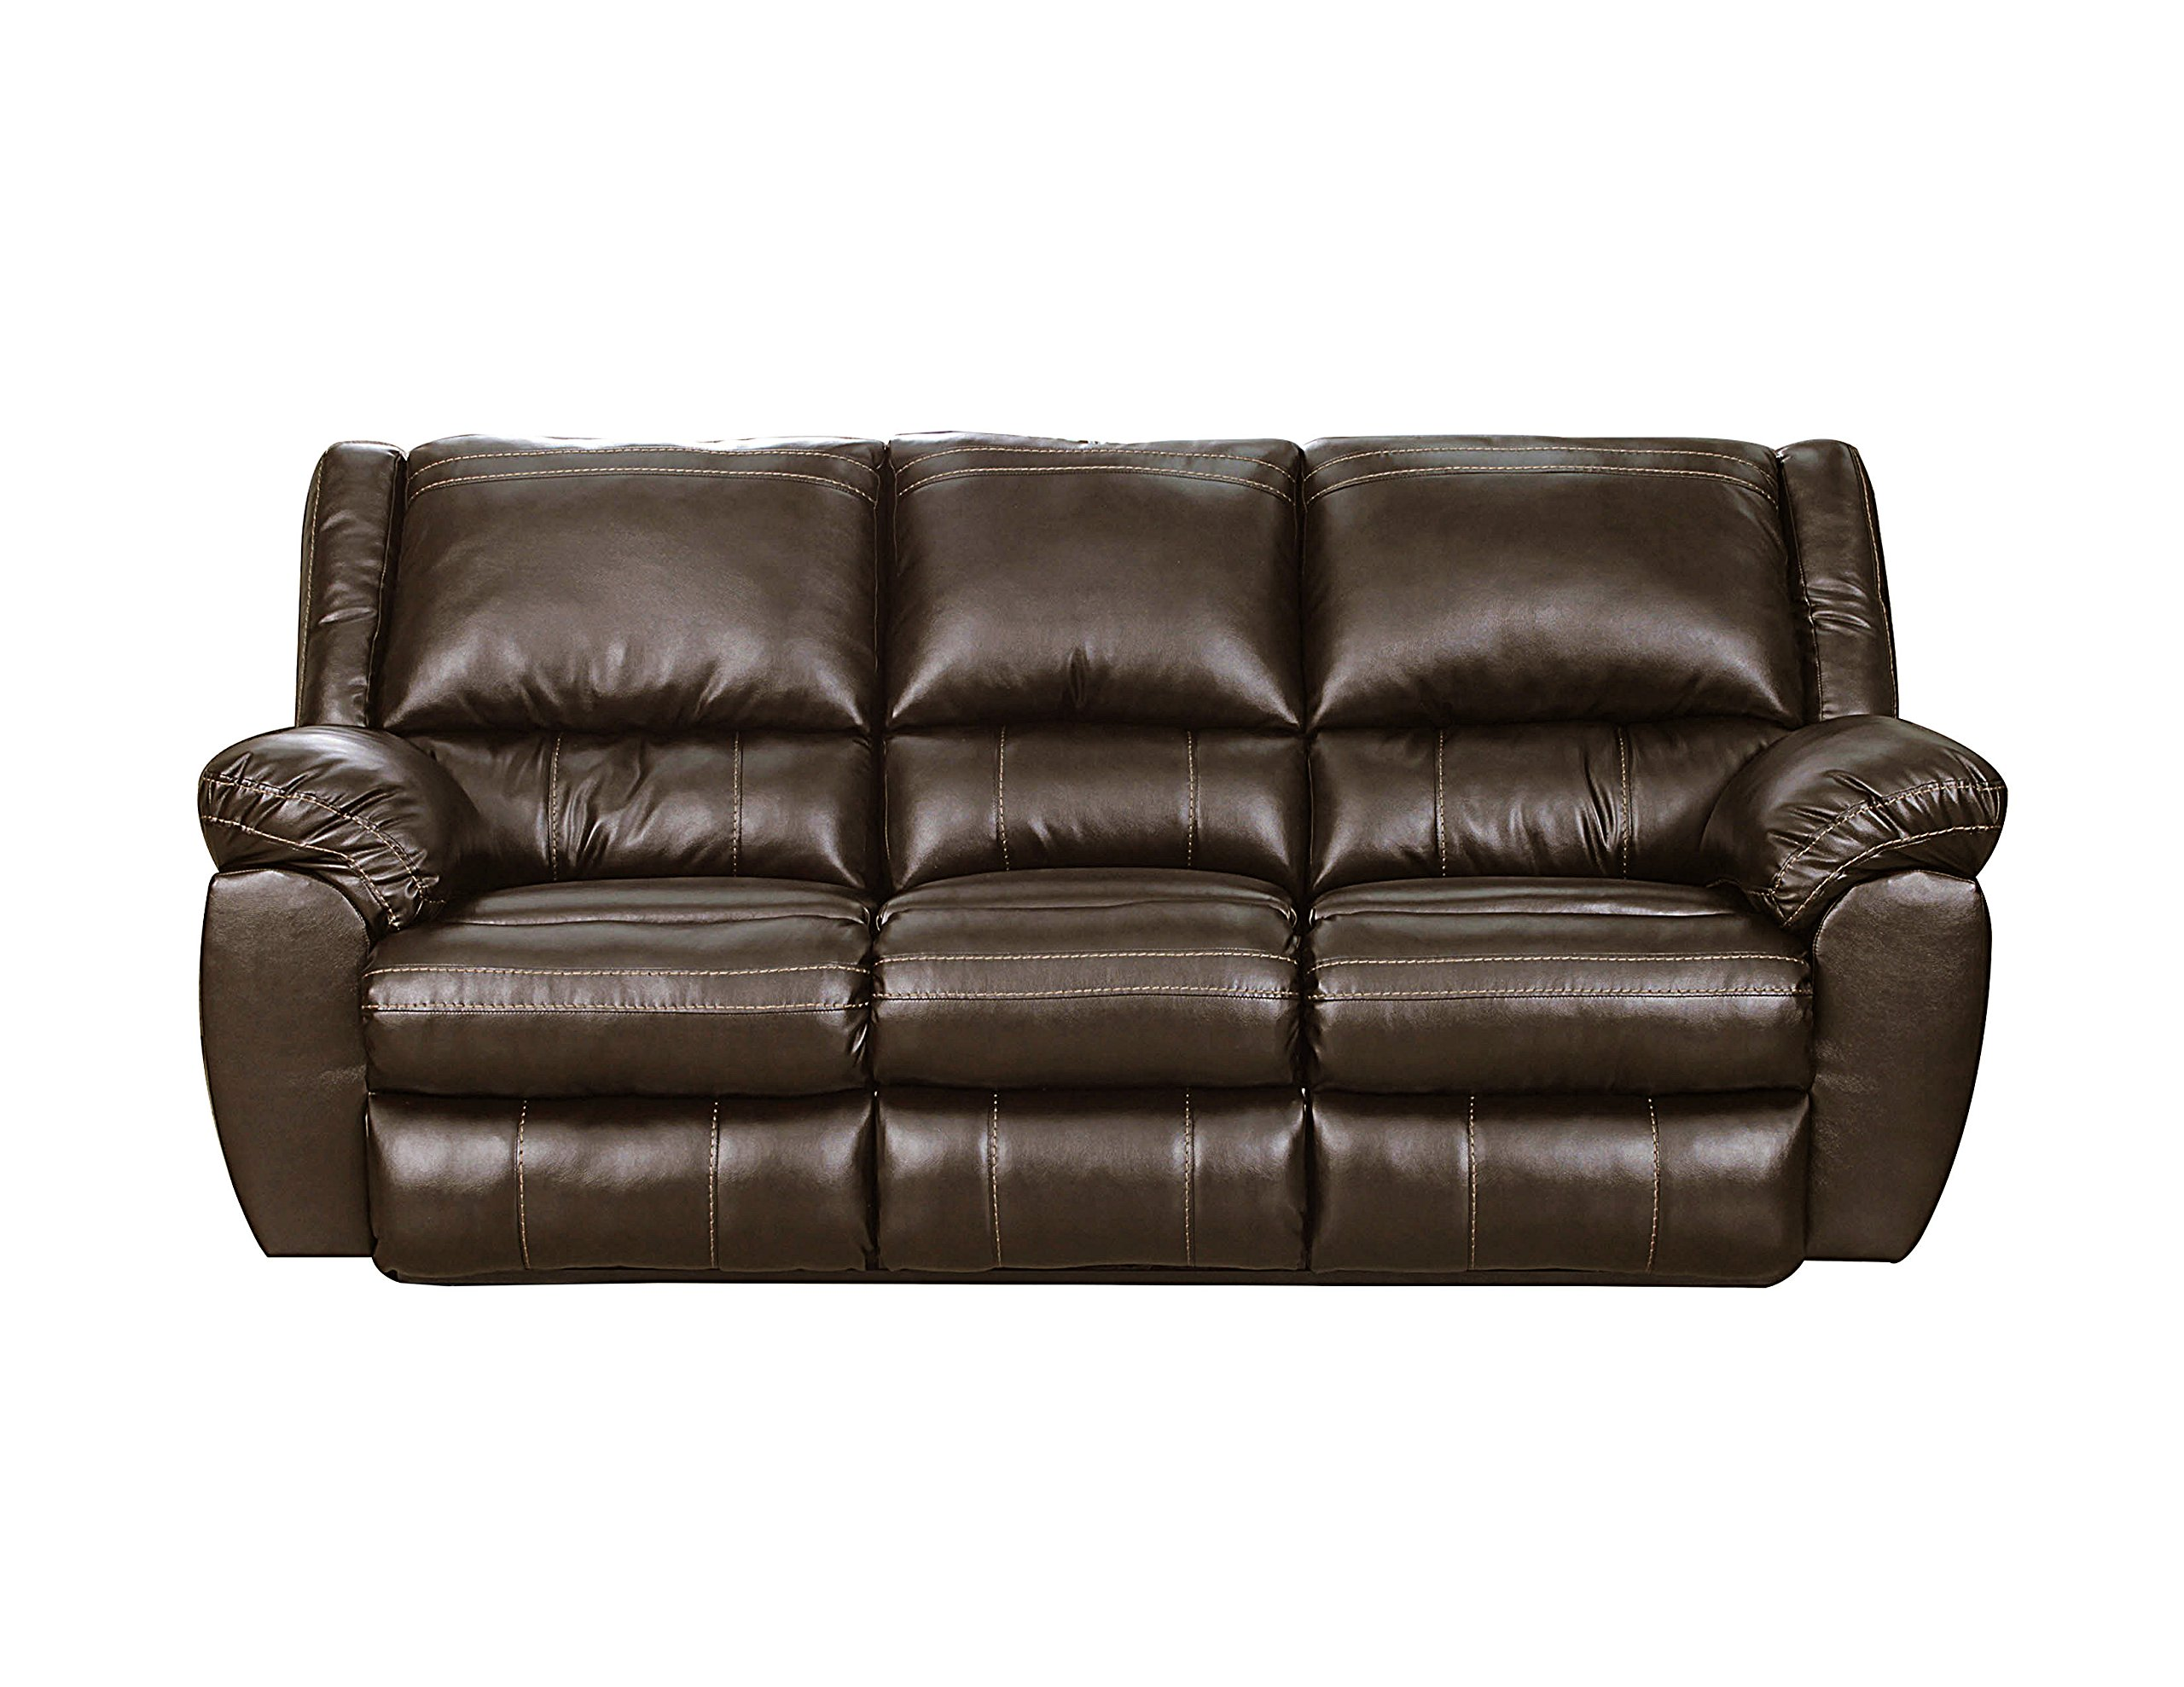 Simmons Upholstery 50433BR-53 Bingo Motion Sofa, Brown by Simmons Upholstery